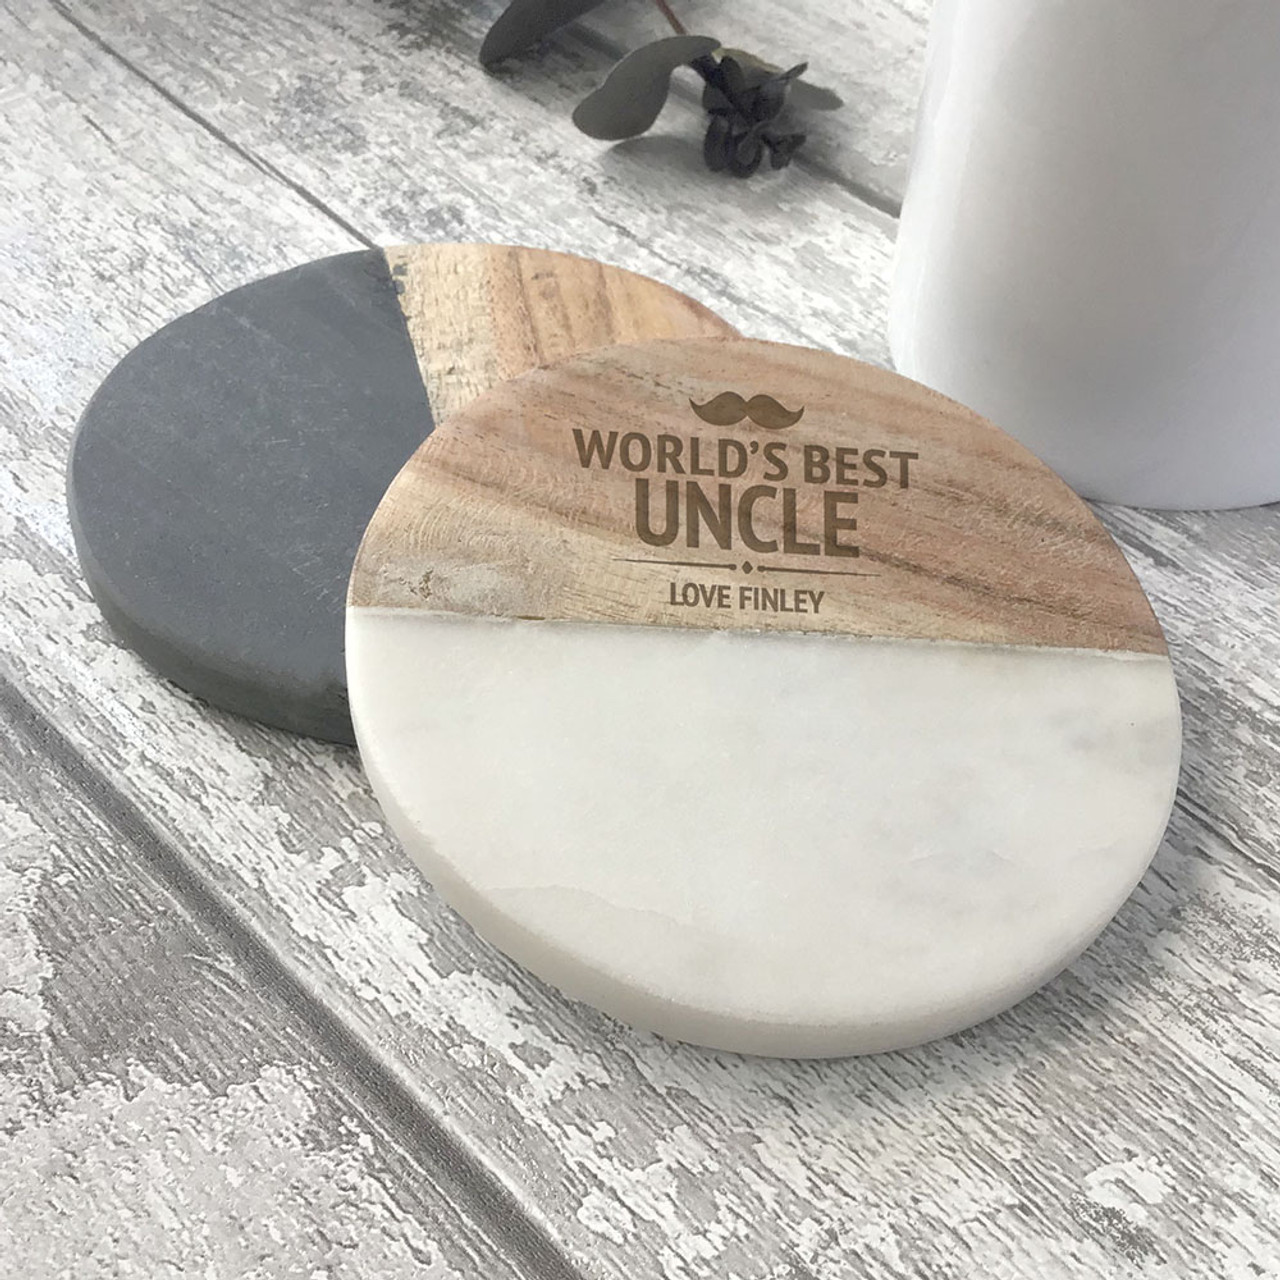 WB0-WB Engraved coaster gift slate /& wood drinks mat personalised World/'s Best